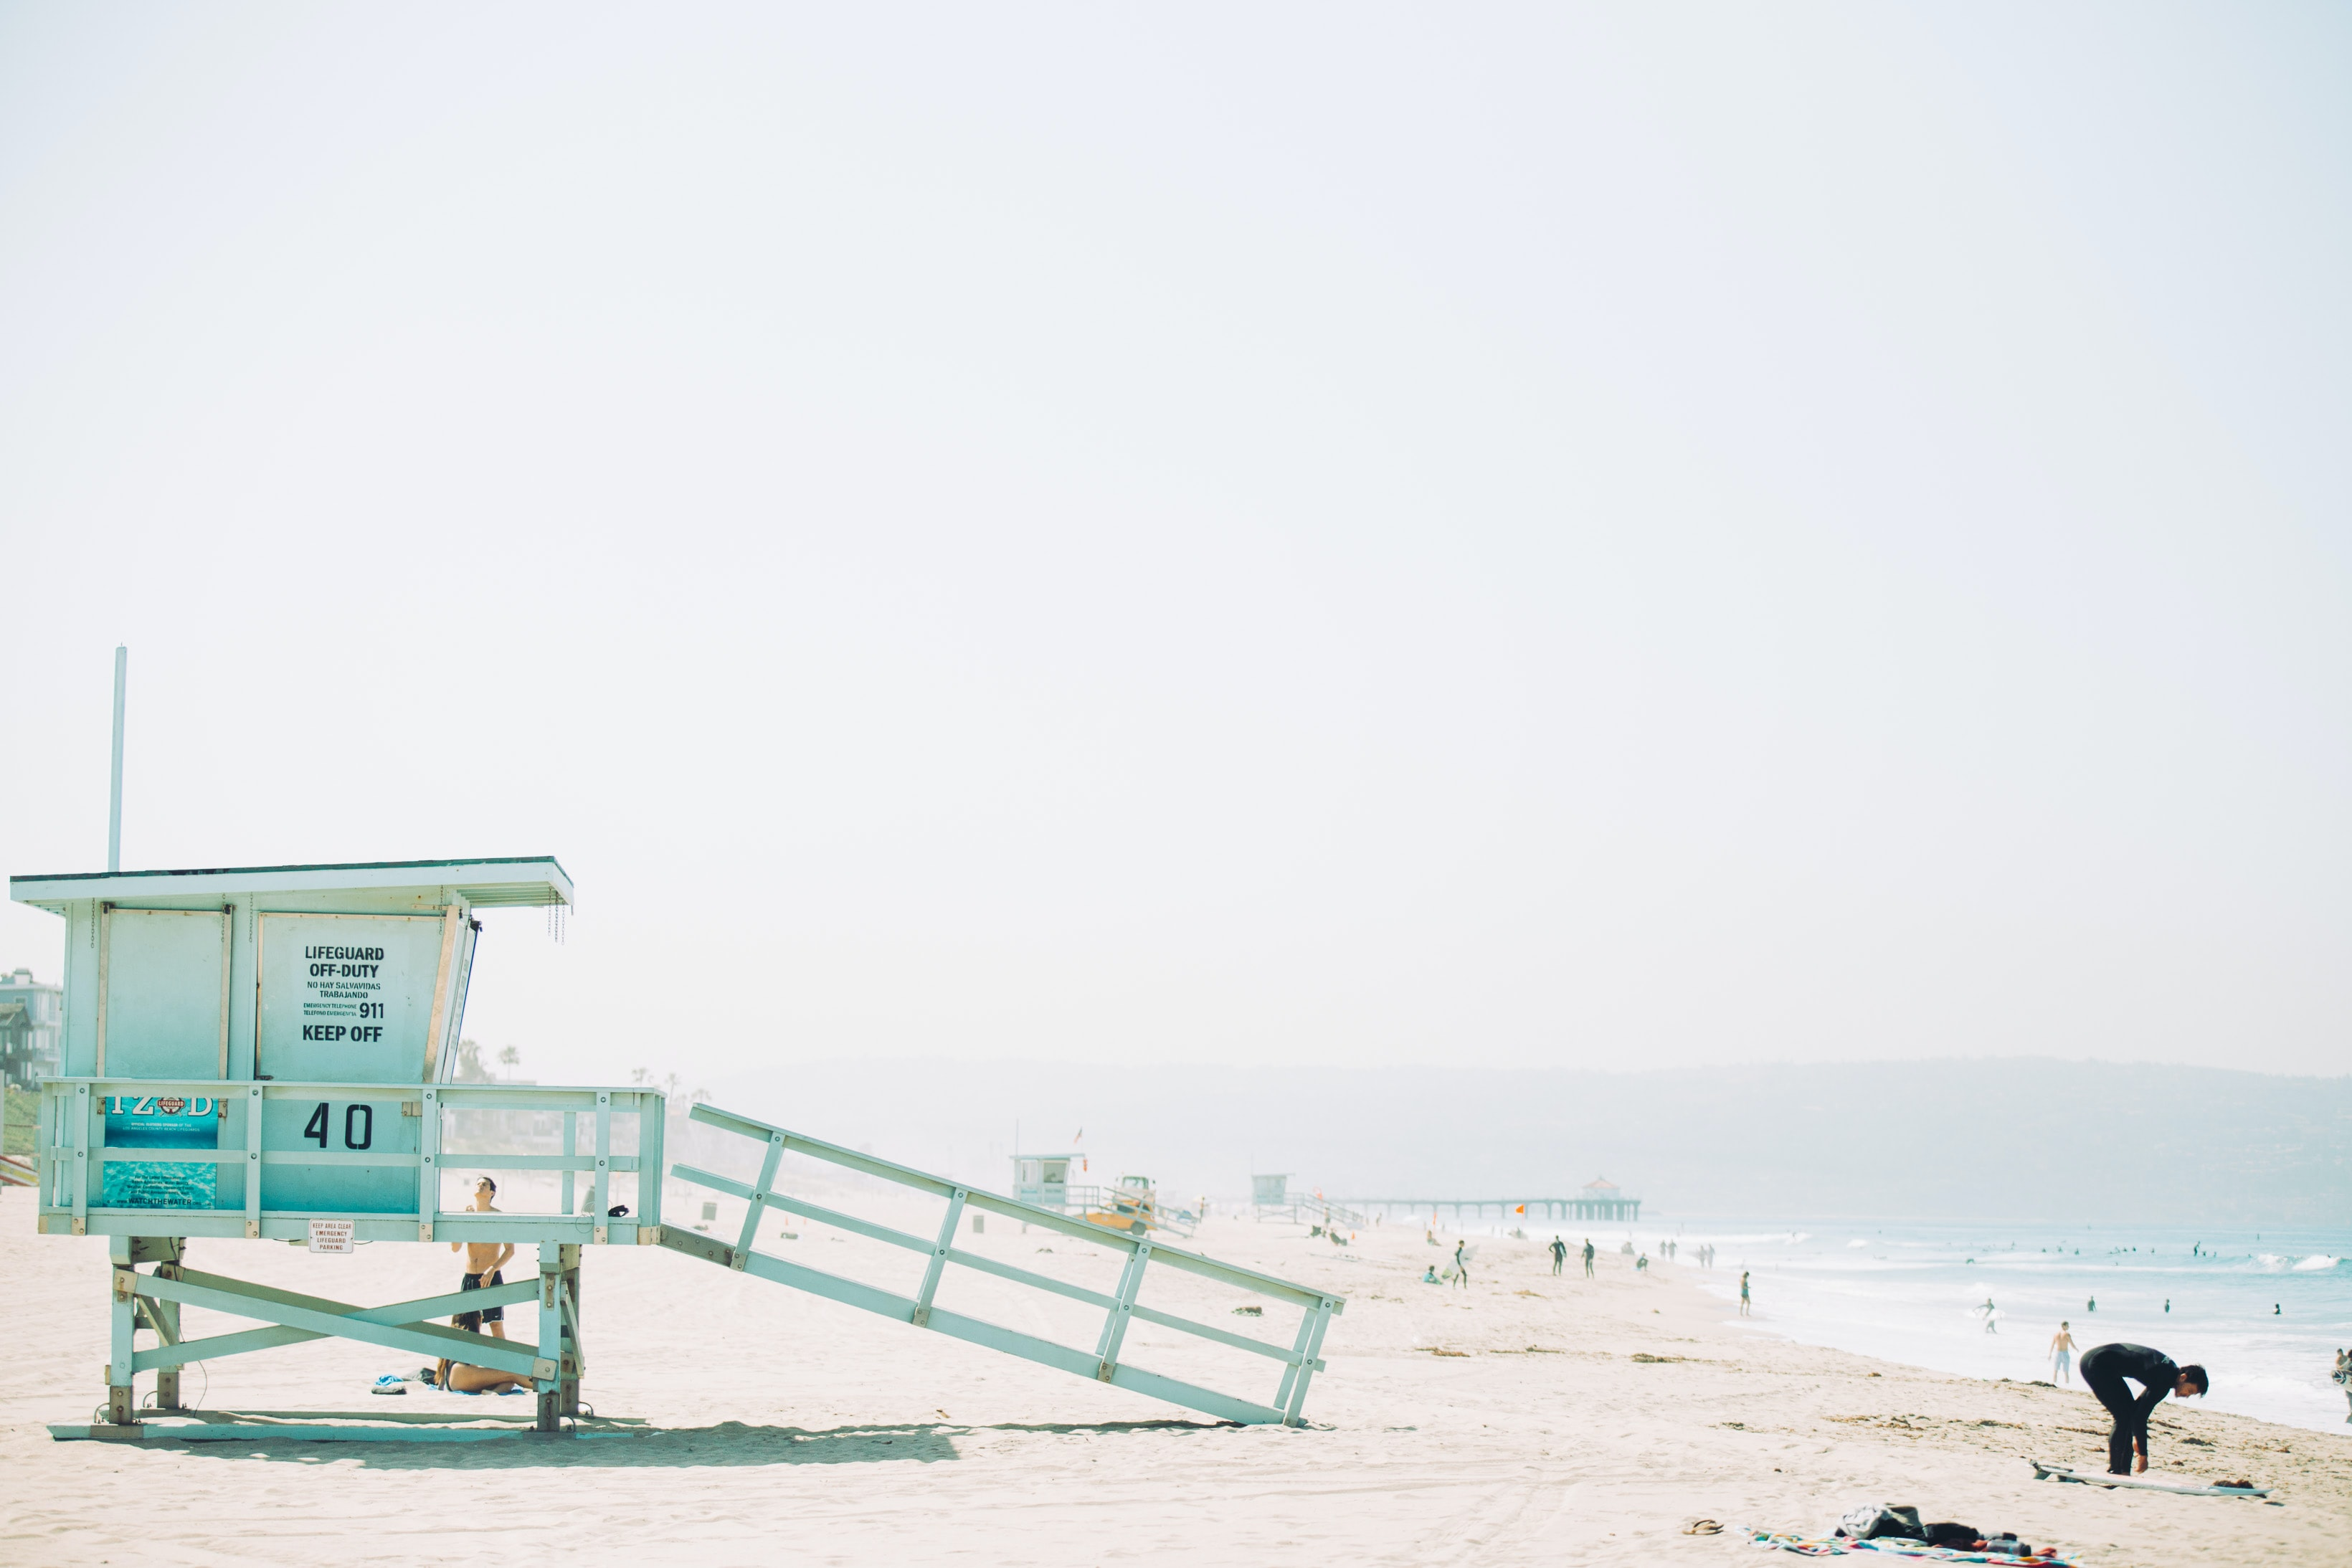 man standing in front of green wooden life guard station in seashore during day time